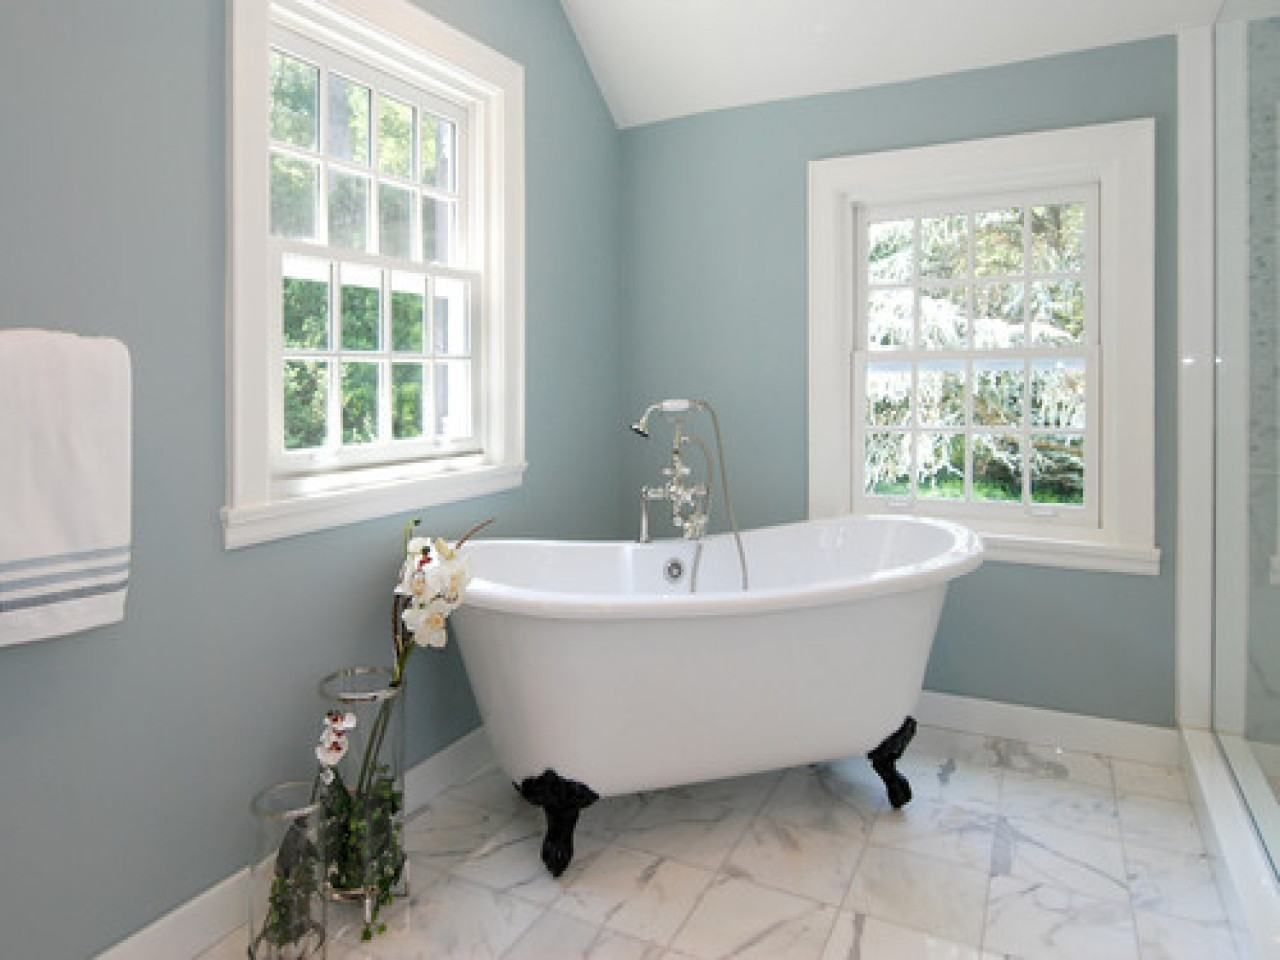 luxurious popular paint colors for small bathrooms best on current popular interior paint colors id=49638